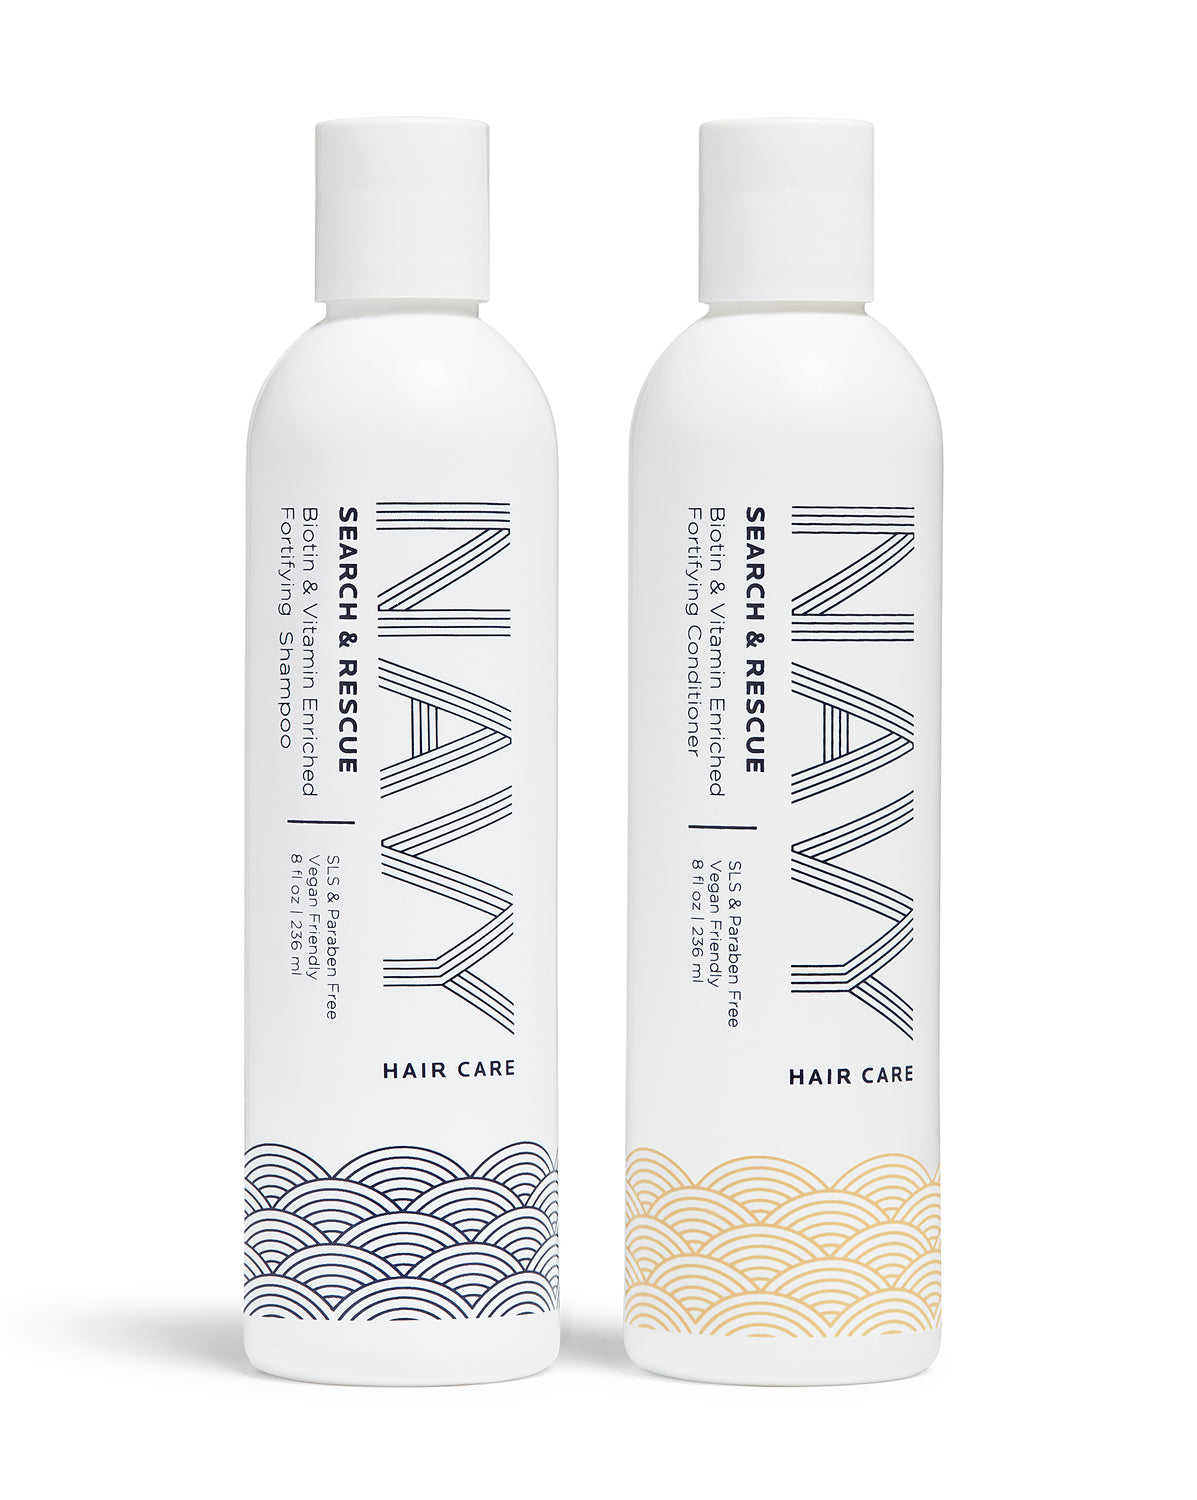 Search & Rescue - Shampoo and Conditioner